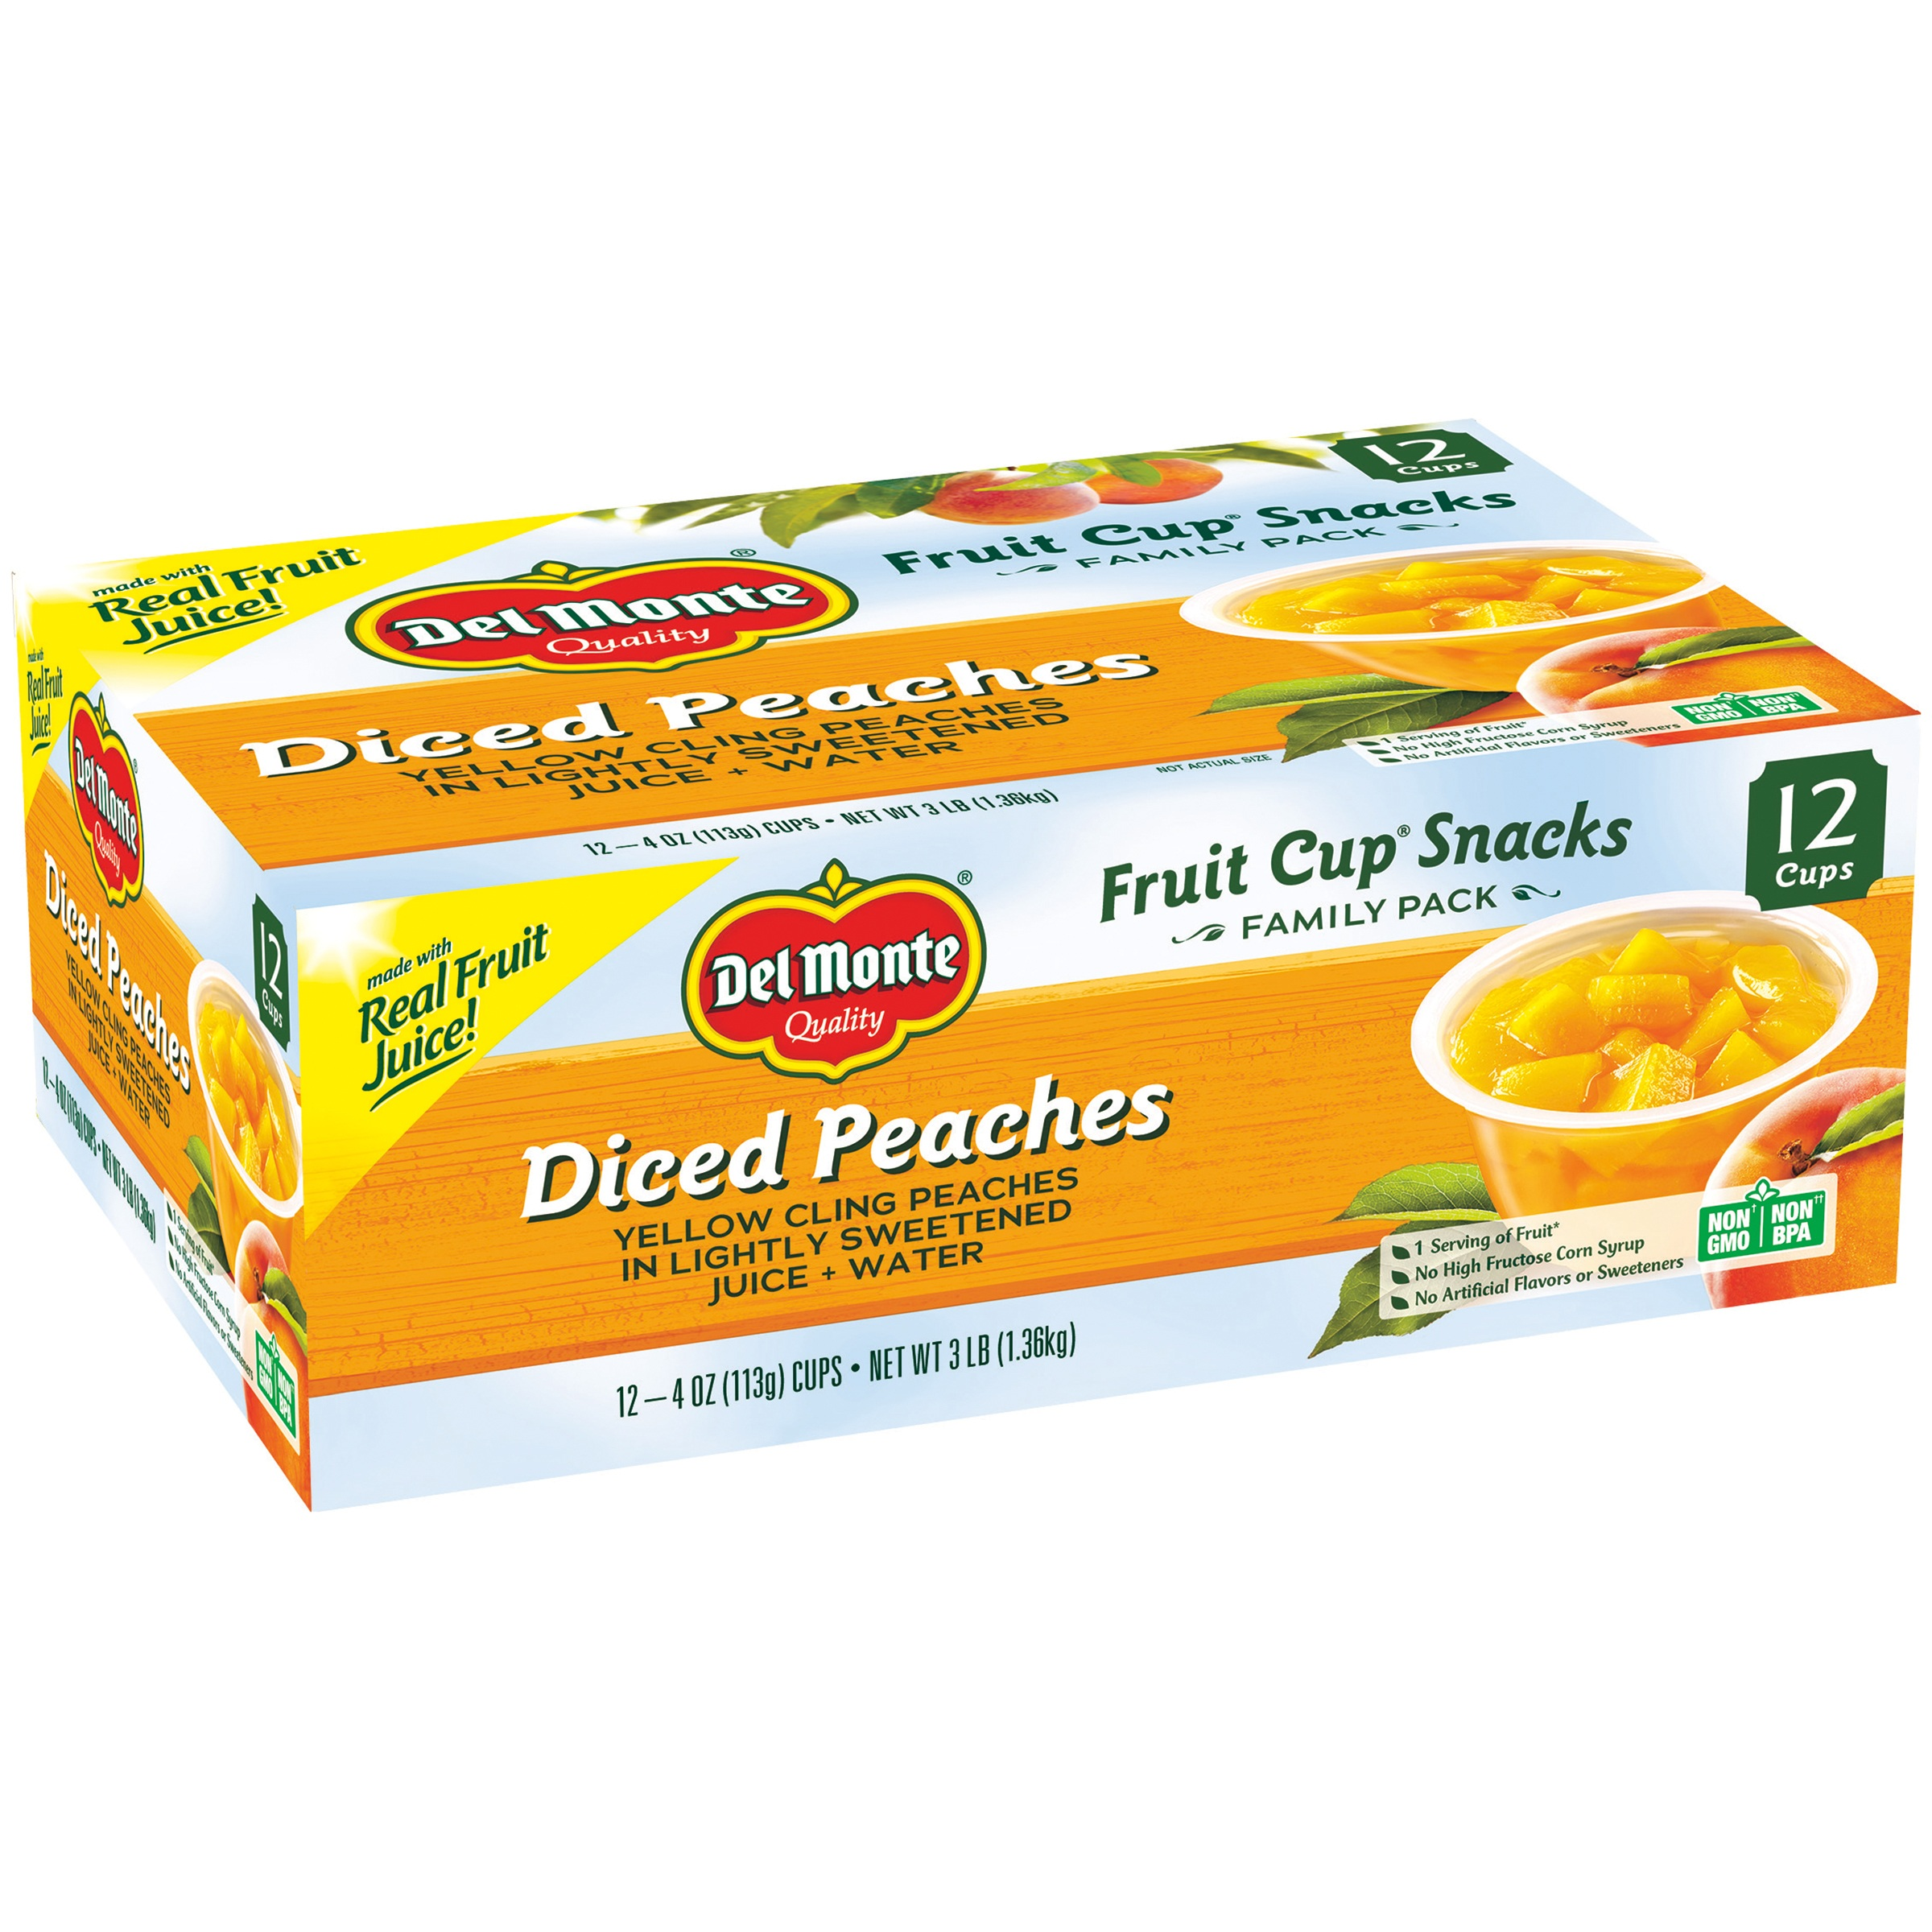 Del Monte Diced Peaches Fruit Cup Snacks, 4 oz, 12 count